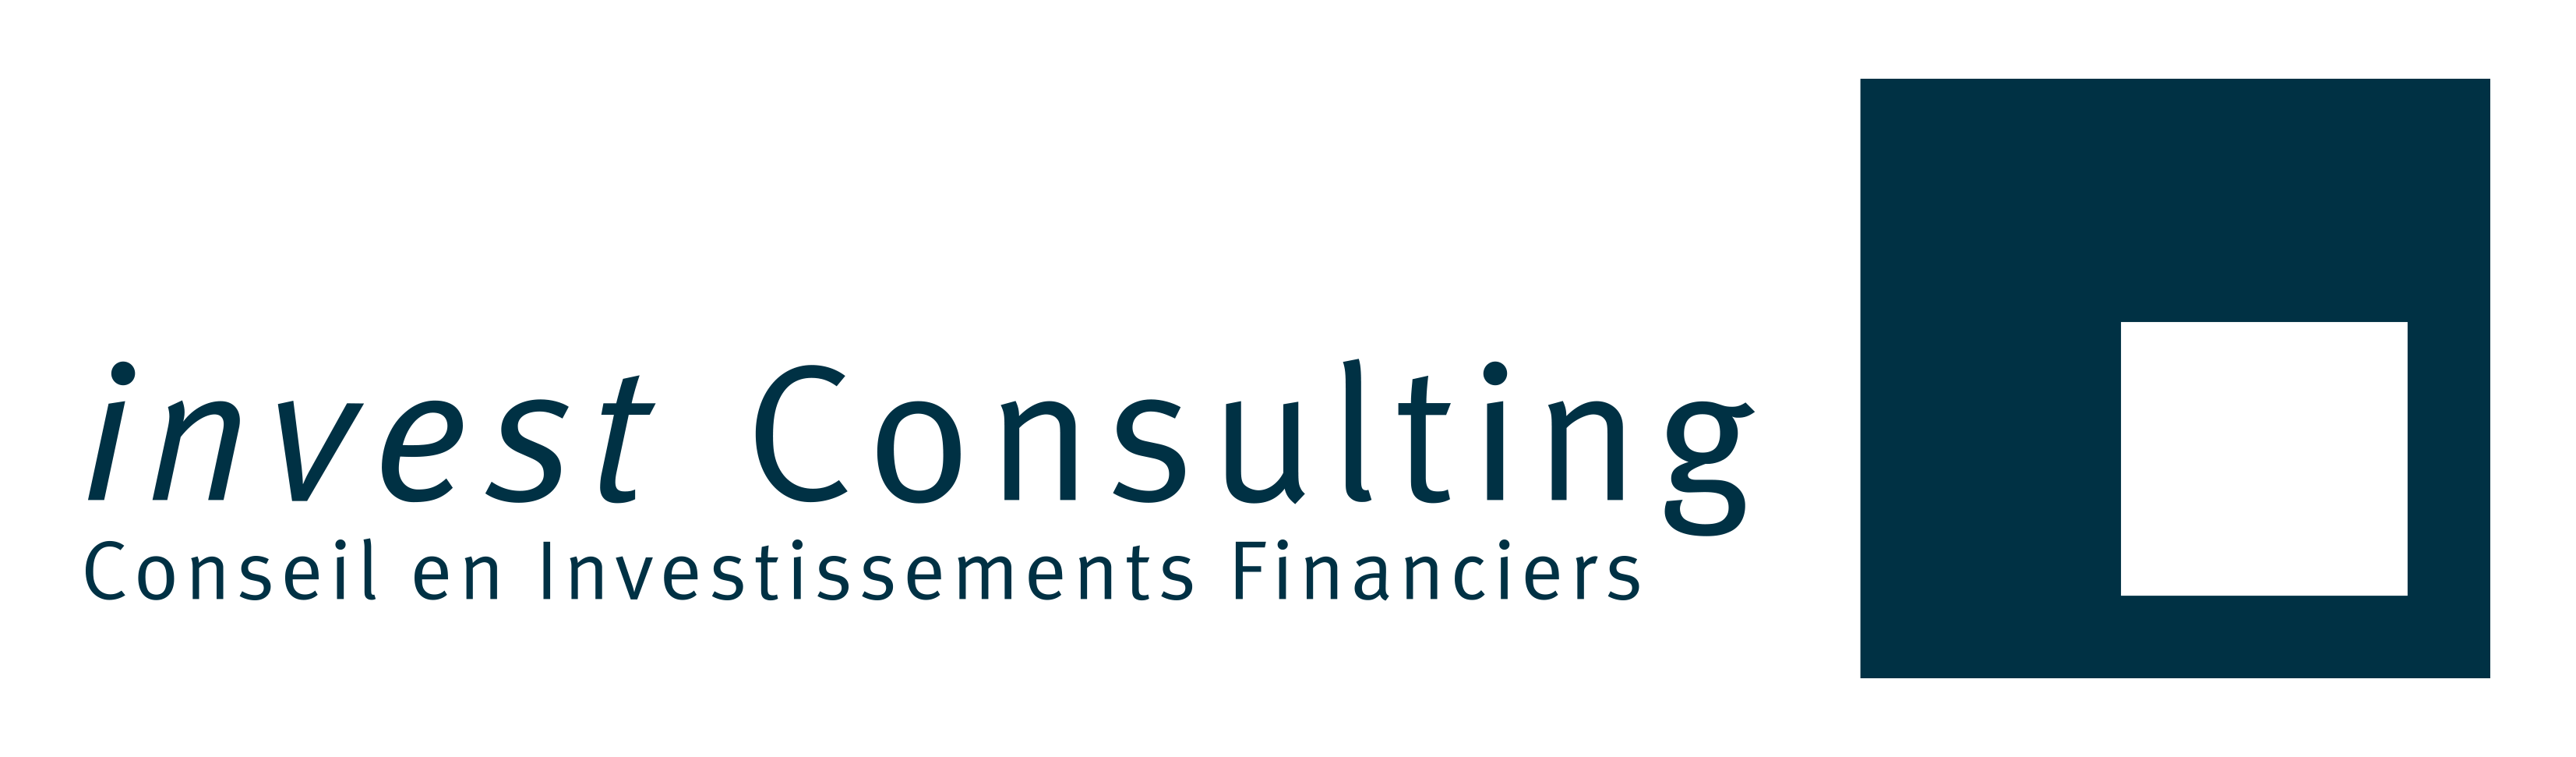 Bosart investment consulting group eu law and bilateral investment treaties united